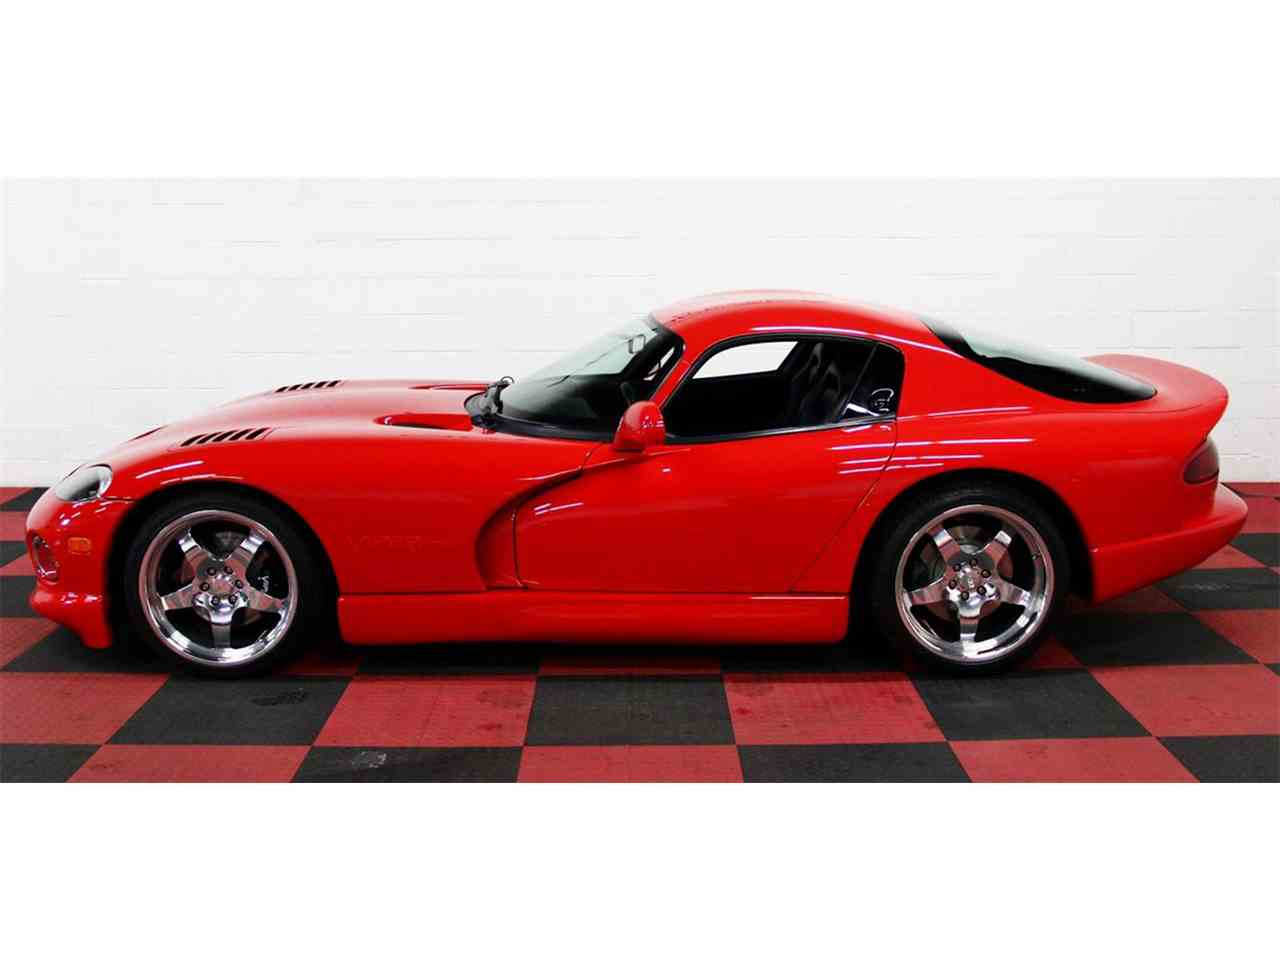 Large Picture of 1998 Dodge Viper located in Algonquin Illinois - $47,000.00 - LSFT